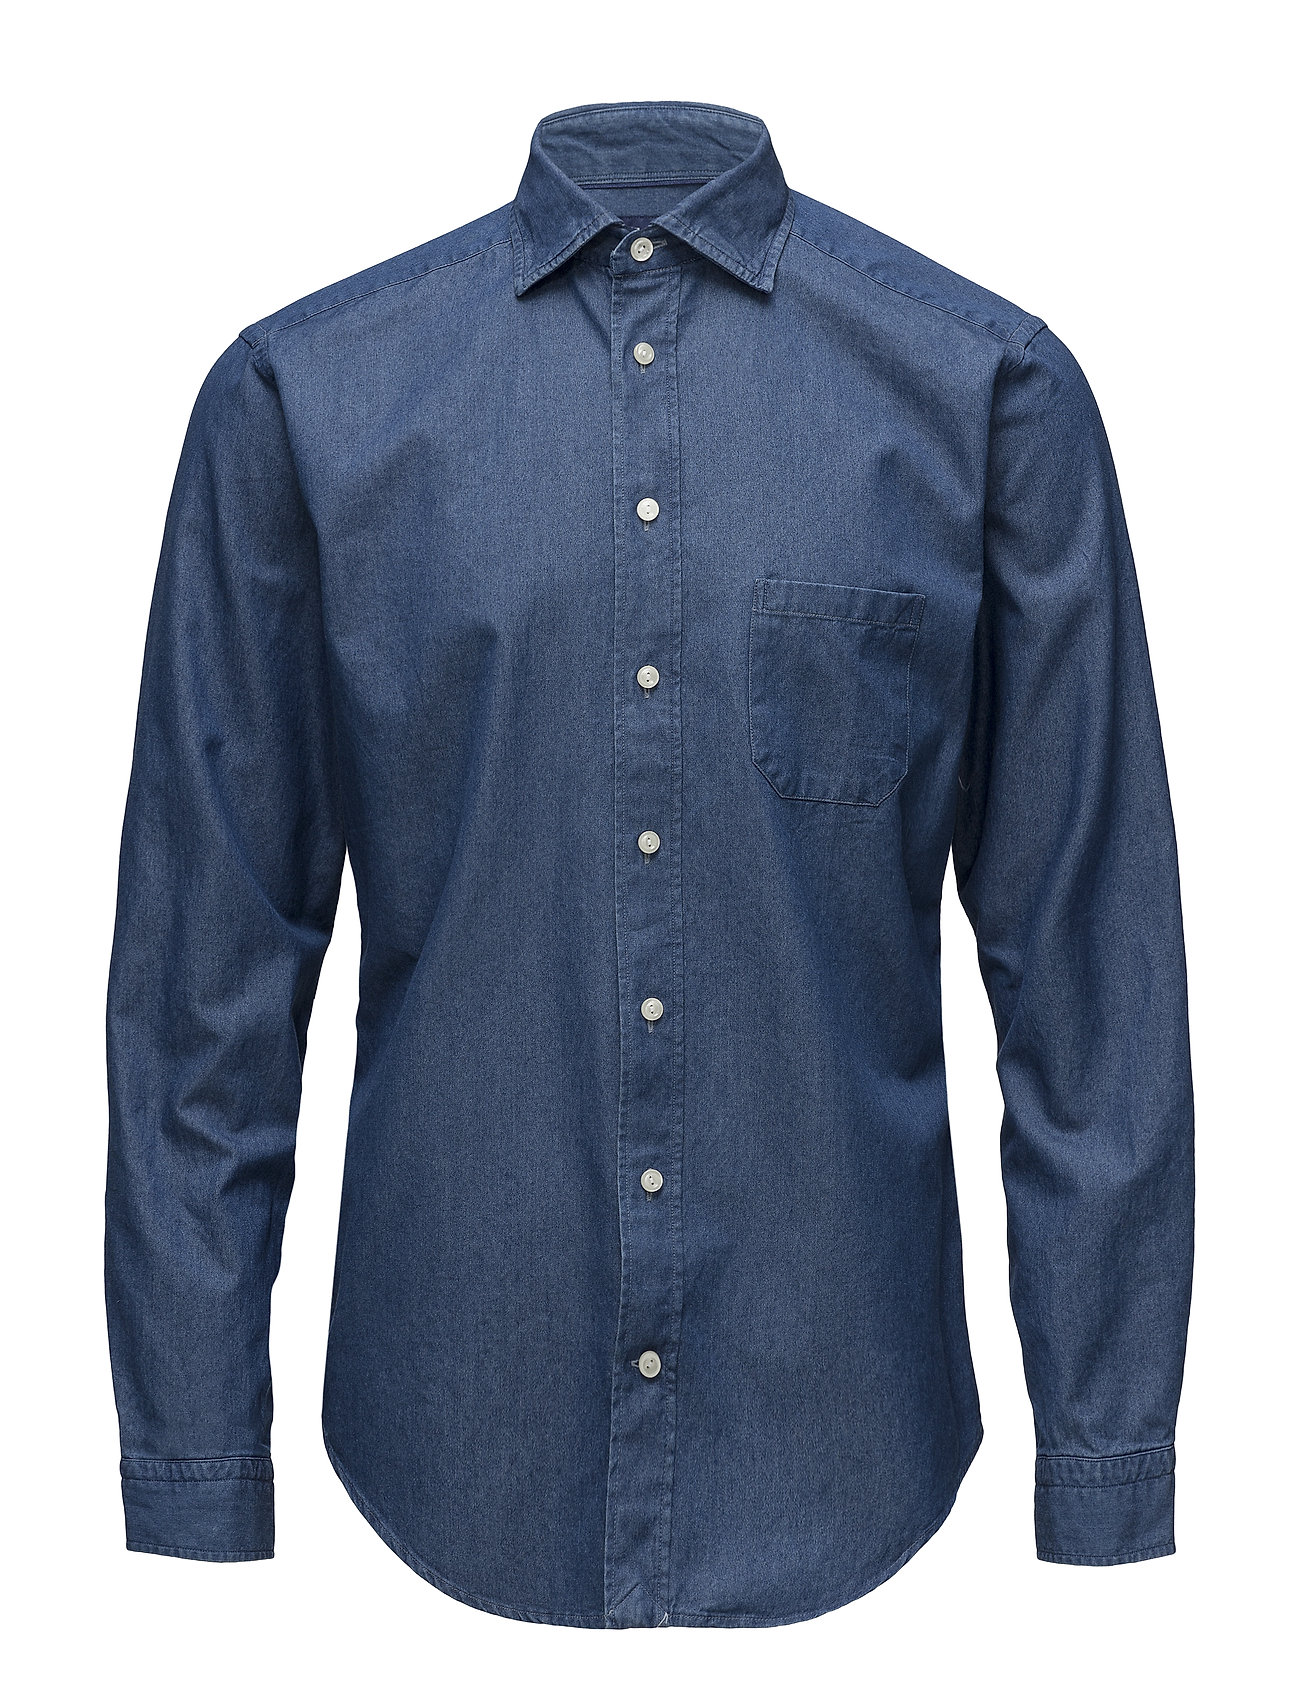 eff8d3b8e2 Denim Cut Away Shirt (Blue) (£135) - Eton - Shirts